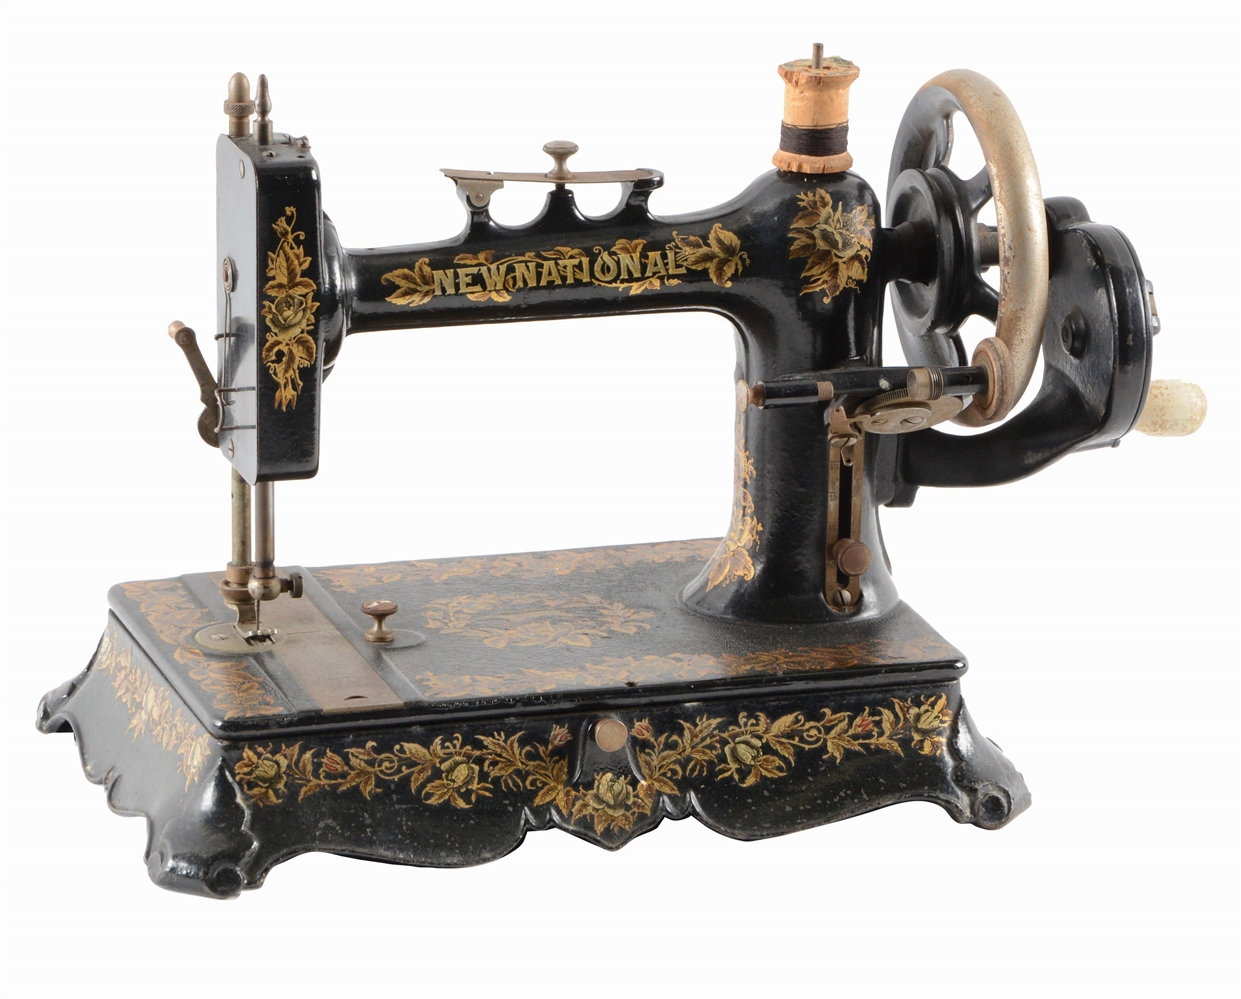 NEW NATIONAL SEWING MACHINE.